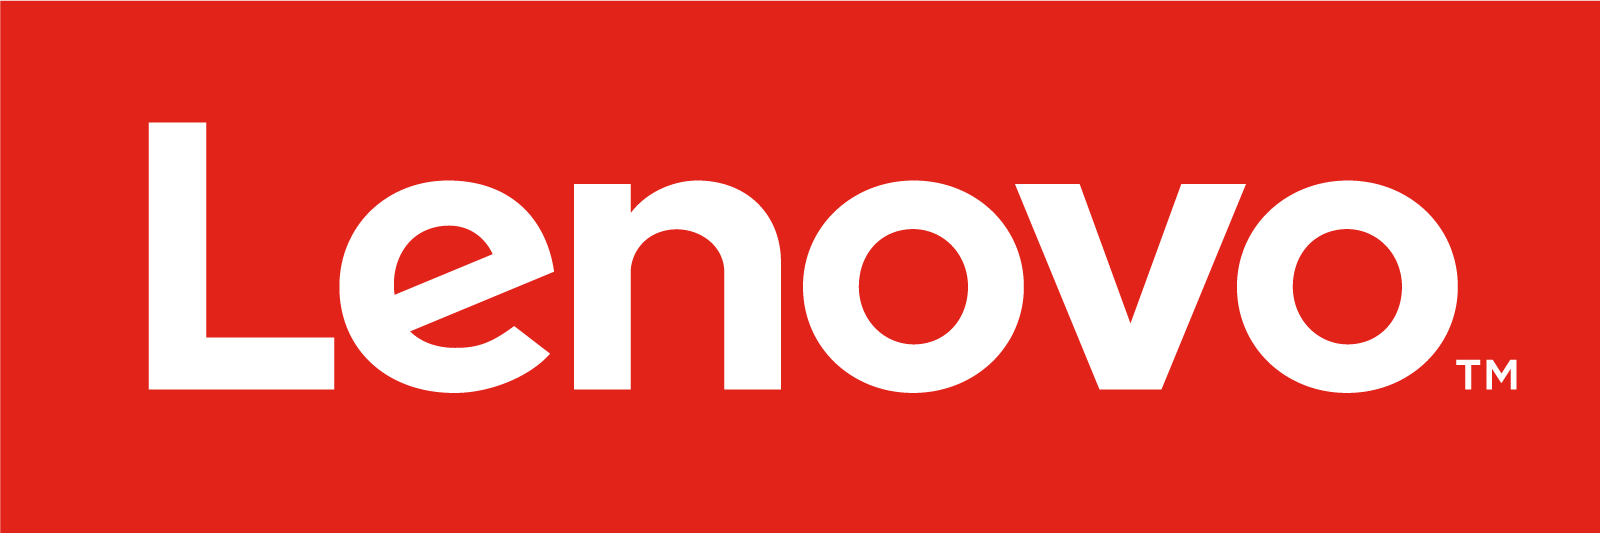 Lenovo phone number